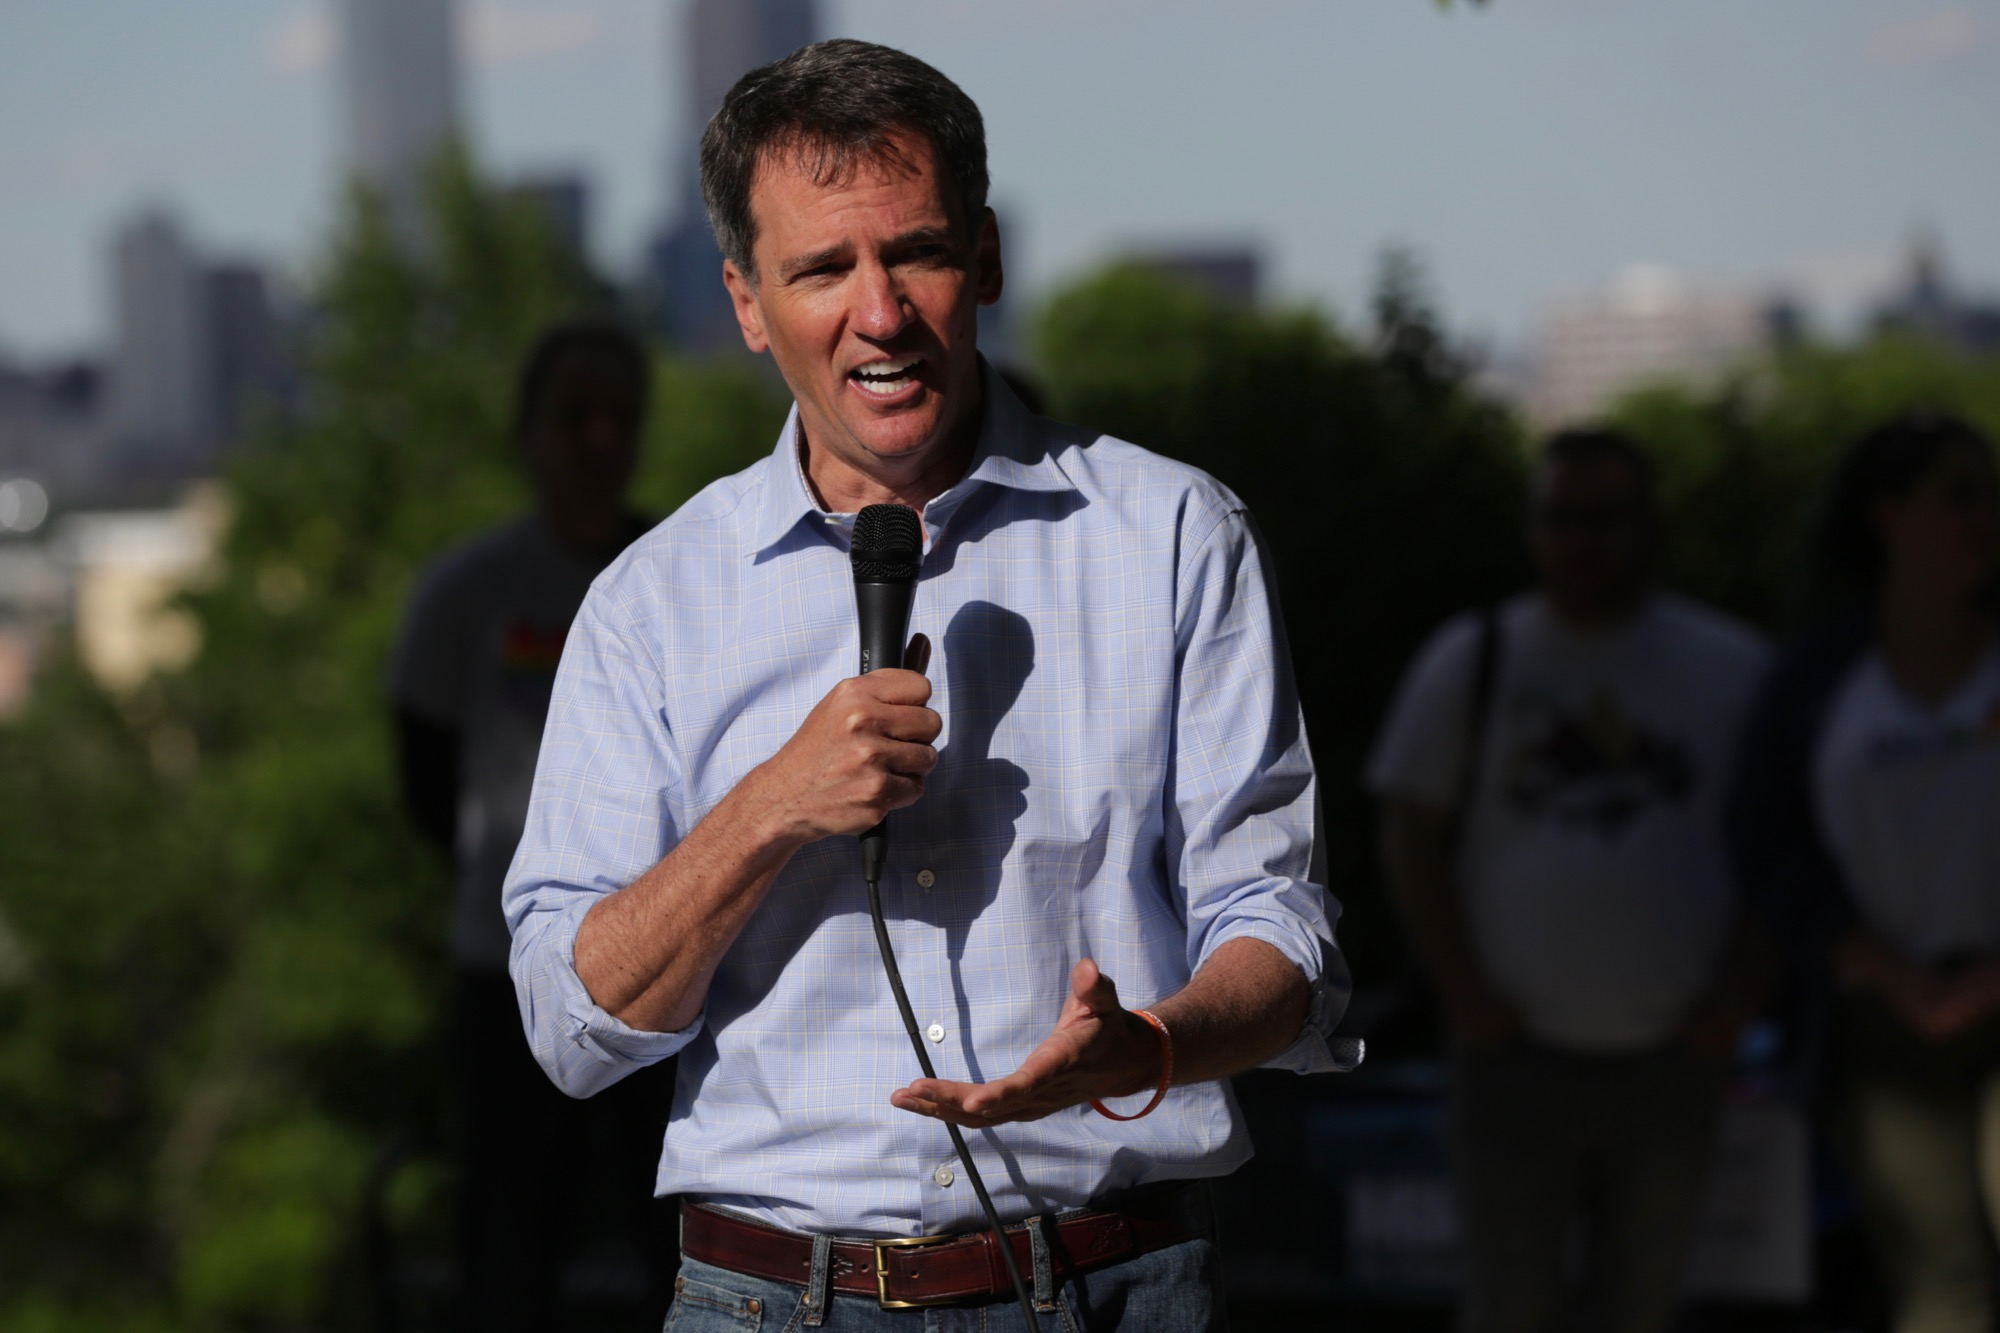 Former state House Speaker Andrew Romanoff at a picnic-style candidate forum hosted by Indivisible Denver hosted for Democrats running to unseat Republican U.S. Sen. Cory Gardner in 2020 at Barnum Park on Sunday, June 9, 2019.